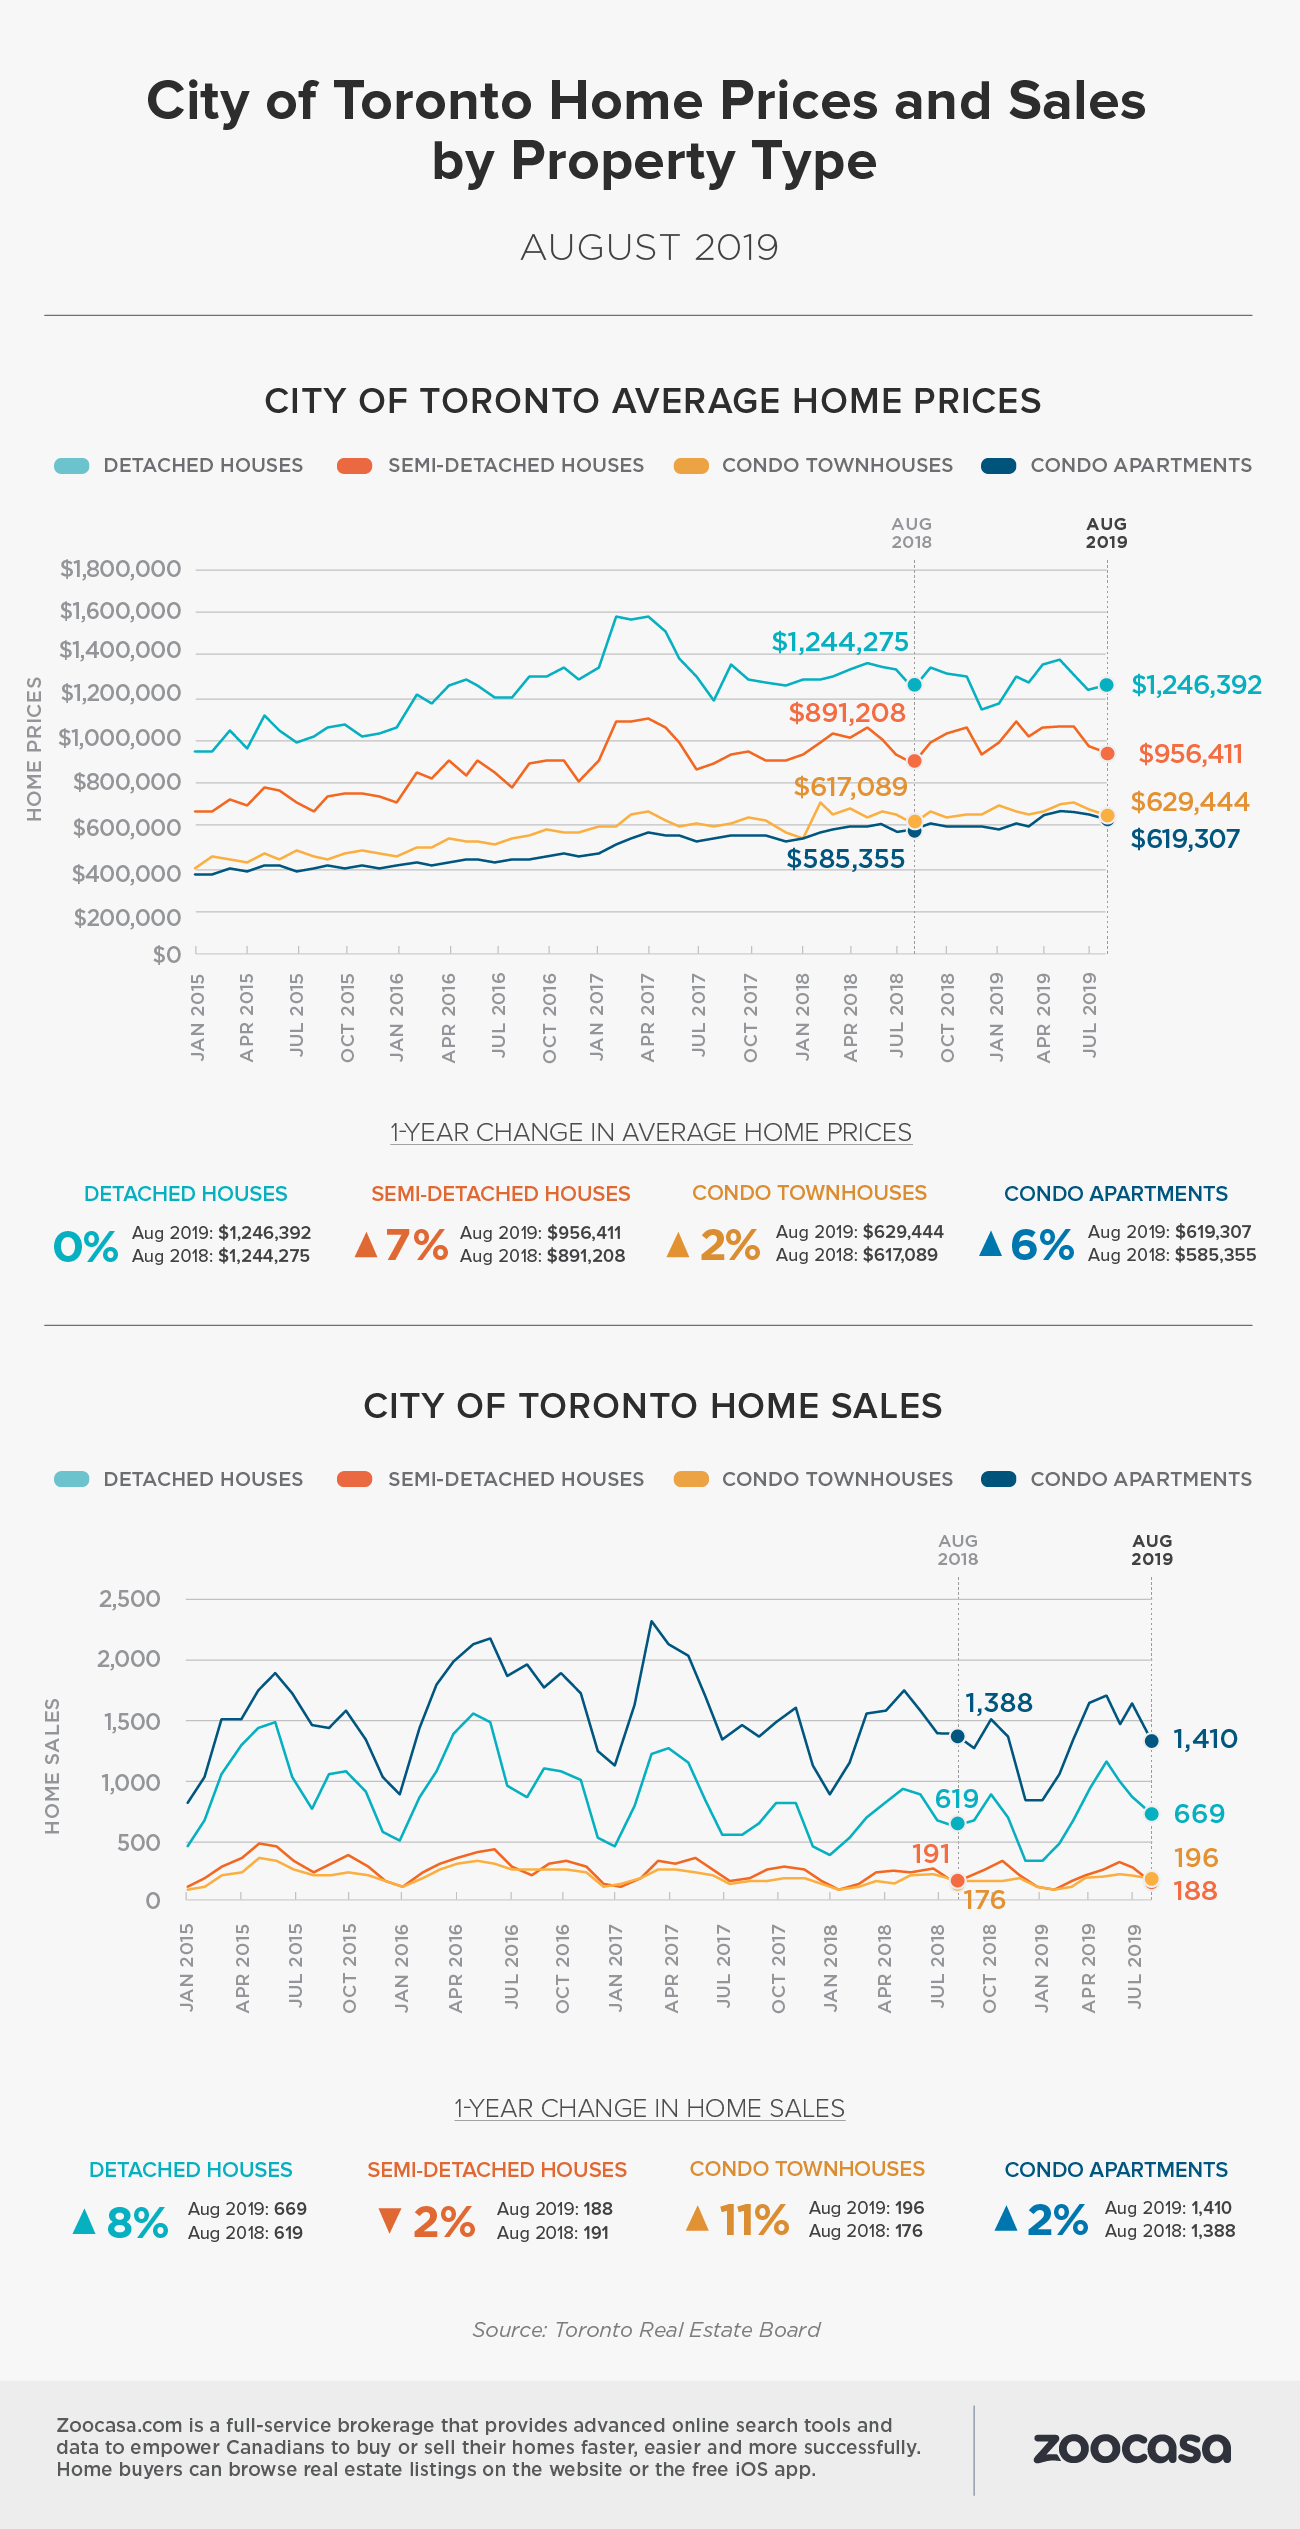 toronto-home-sales-prices-aug-2019